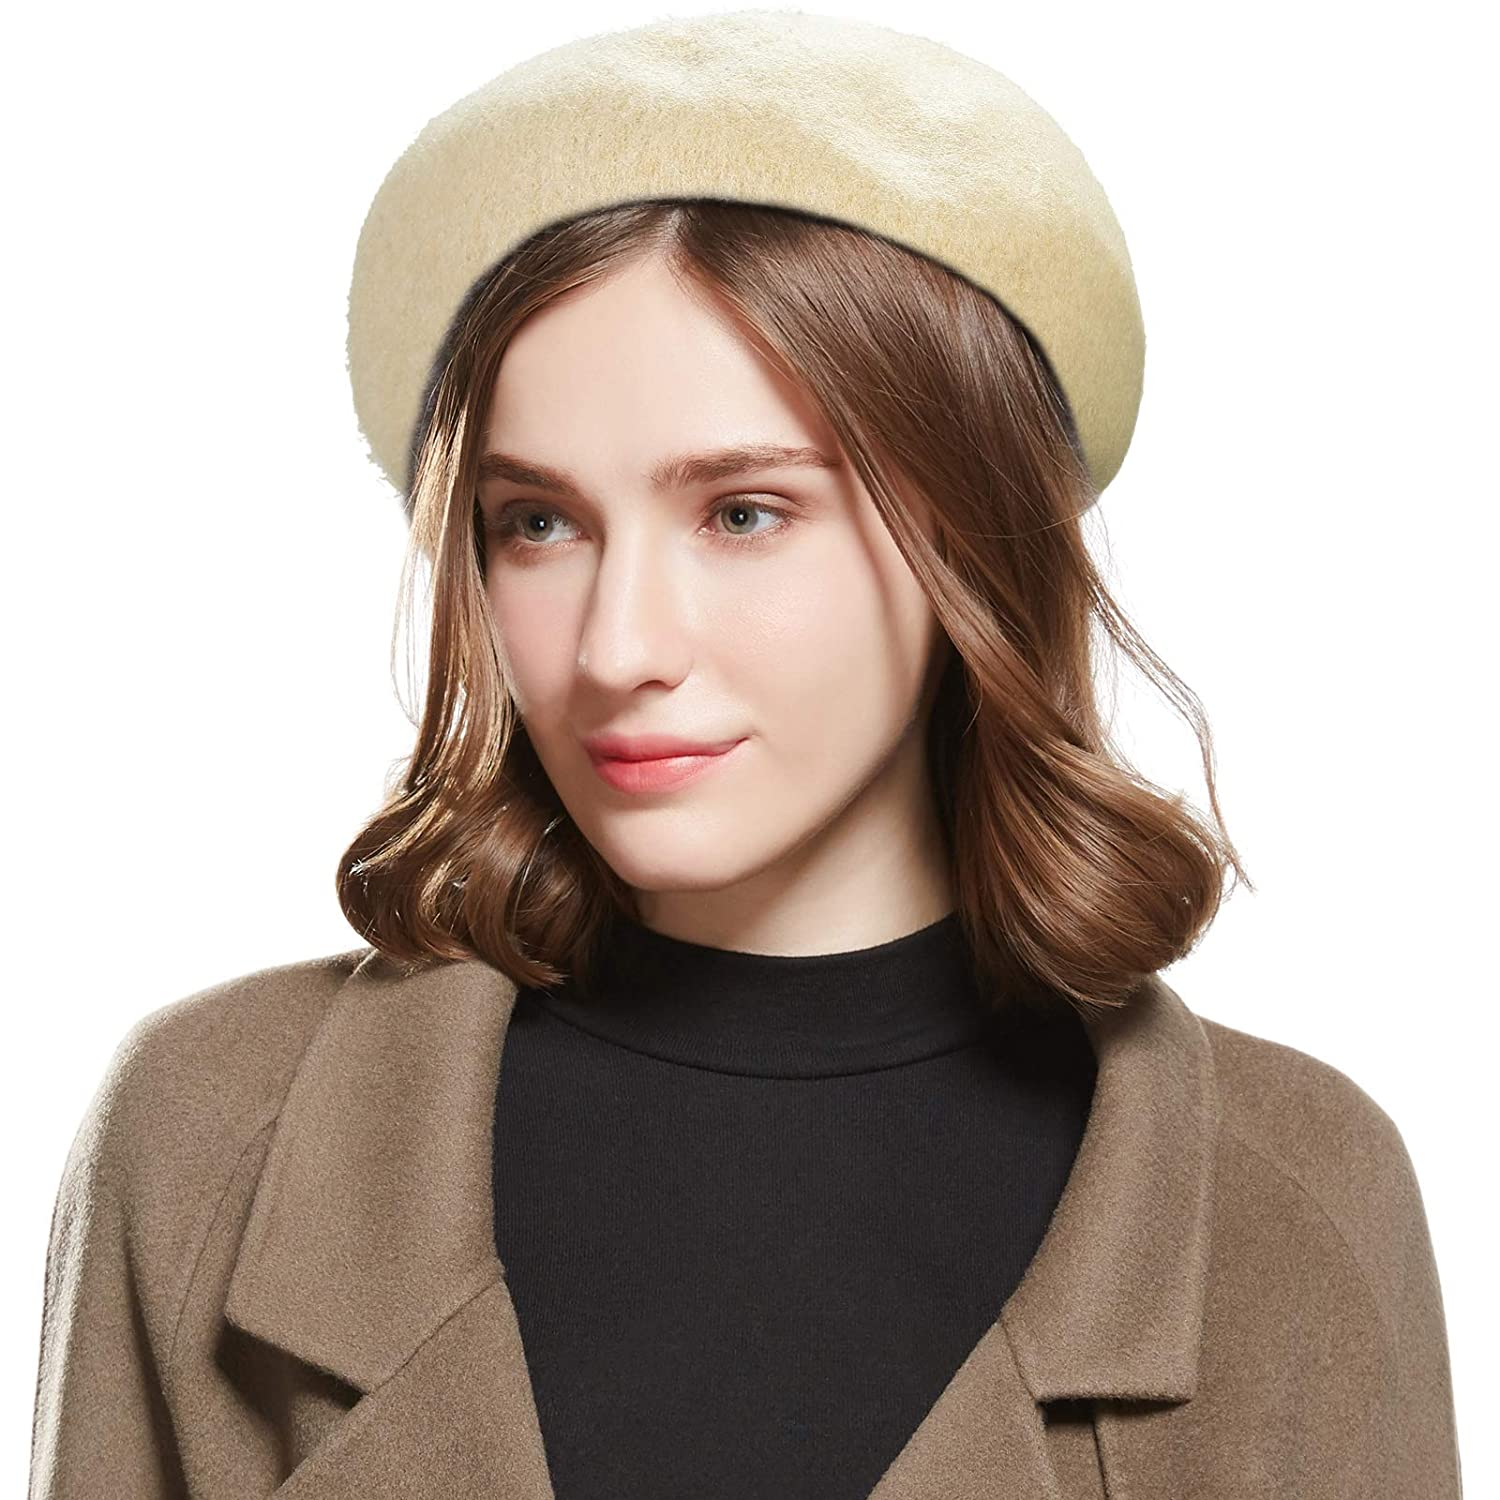 499e37f81 WELROG Wool French Beret Hat - Adjustable Casual Classic Solid Color Artist  Caps for Women